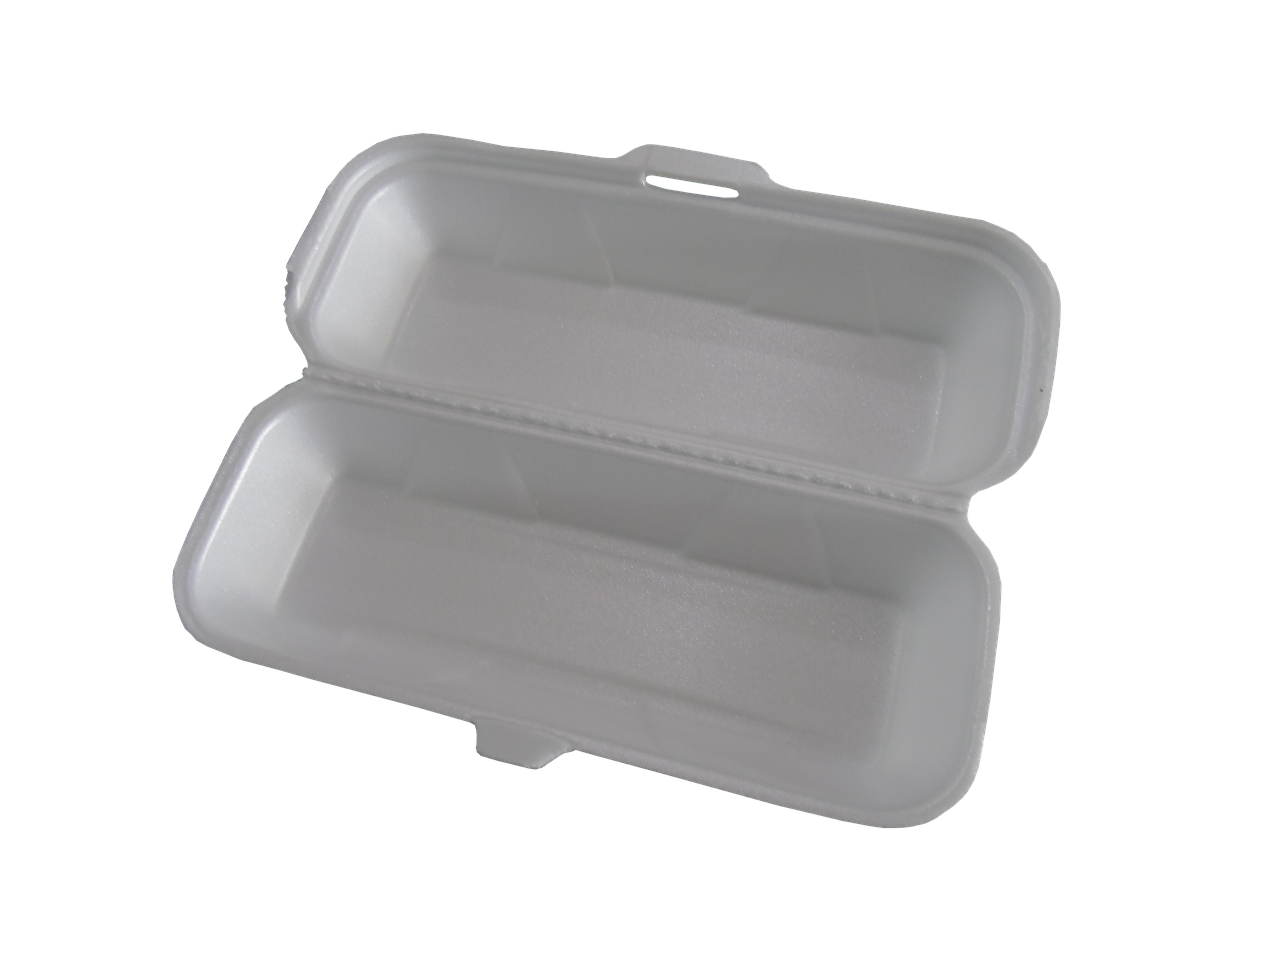 Styrofoam ban gets support in Cayuga County from environmental group